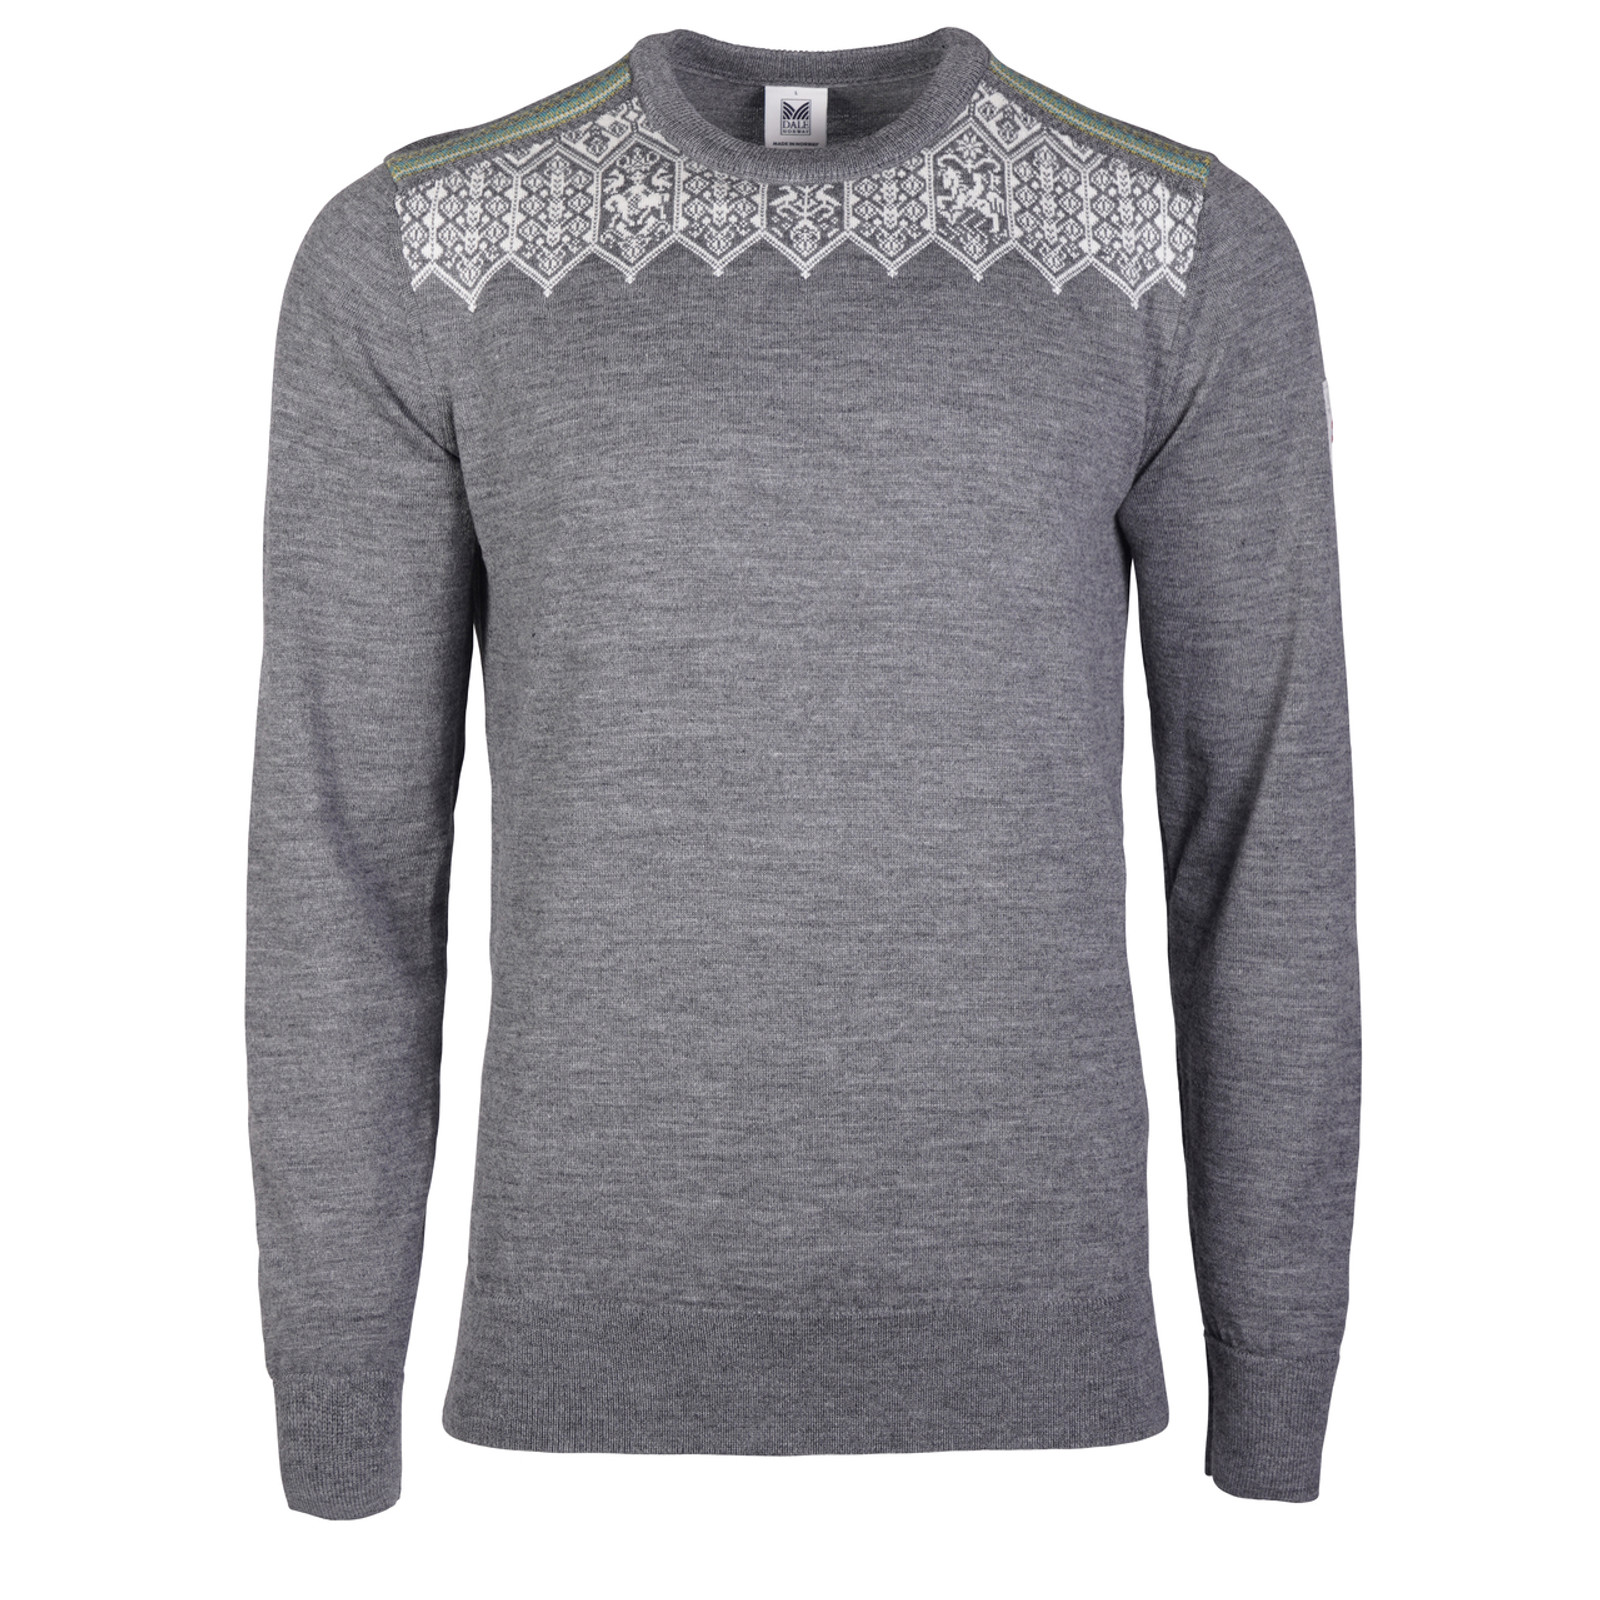 Men's Dale of Norway Lillehammer Sweater in Smoke/Off White/Arctic Blue/Turquoise, 93271-E